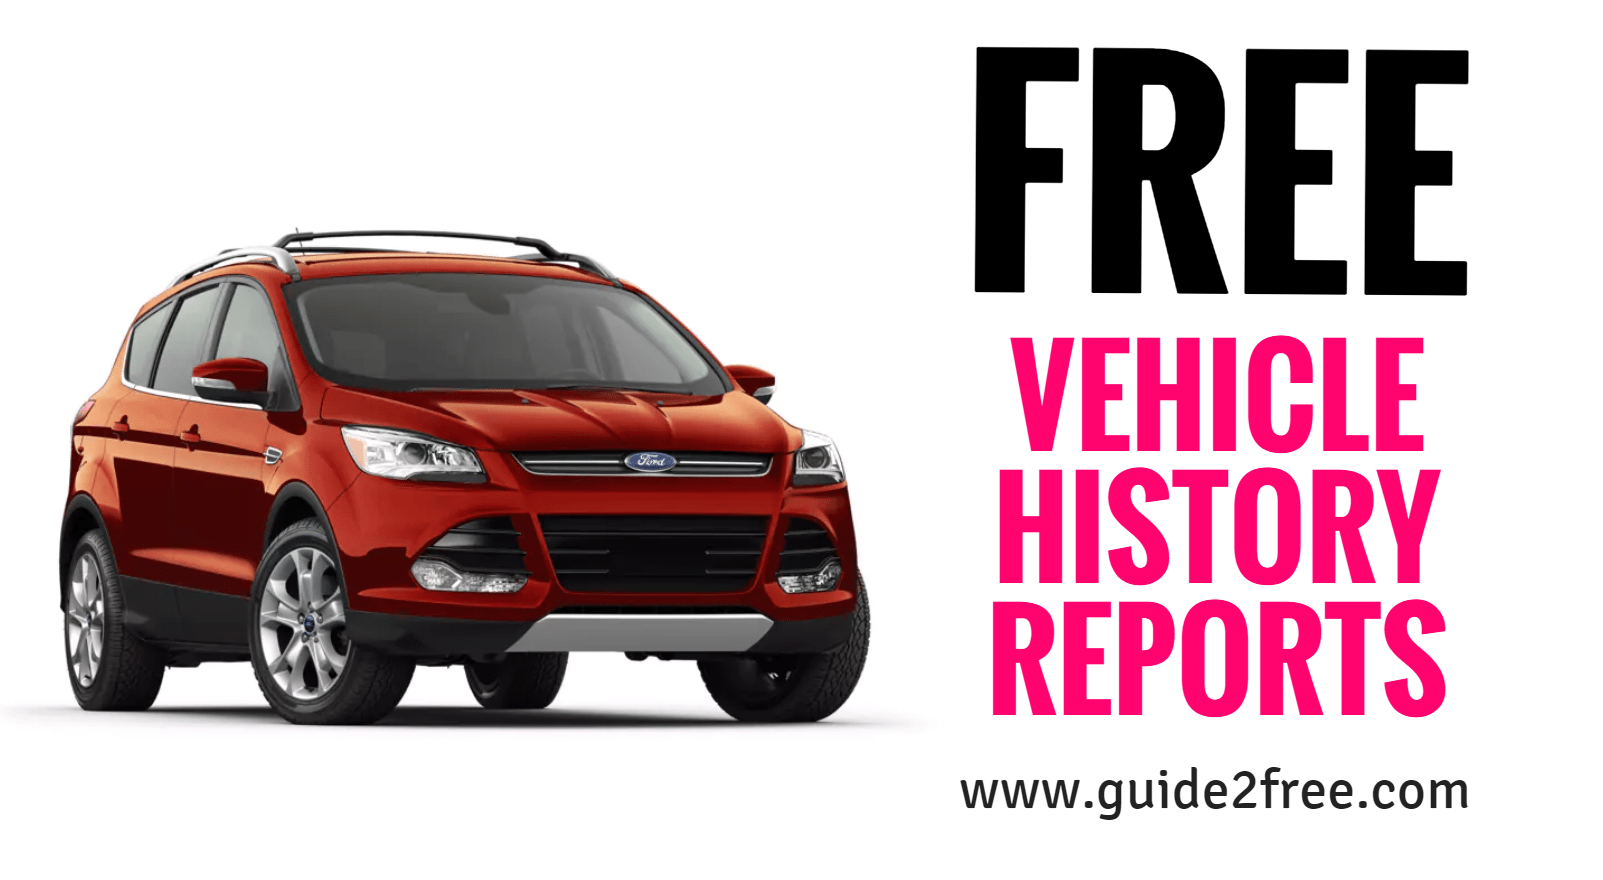 Free Vehicle History Reports Vehicle History And Top Blogs